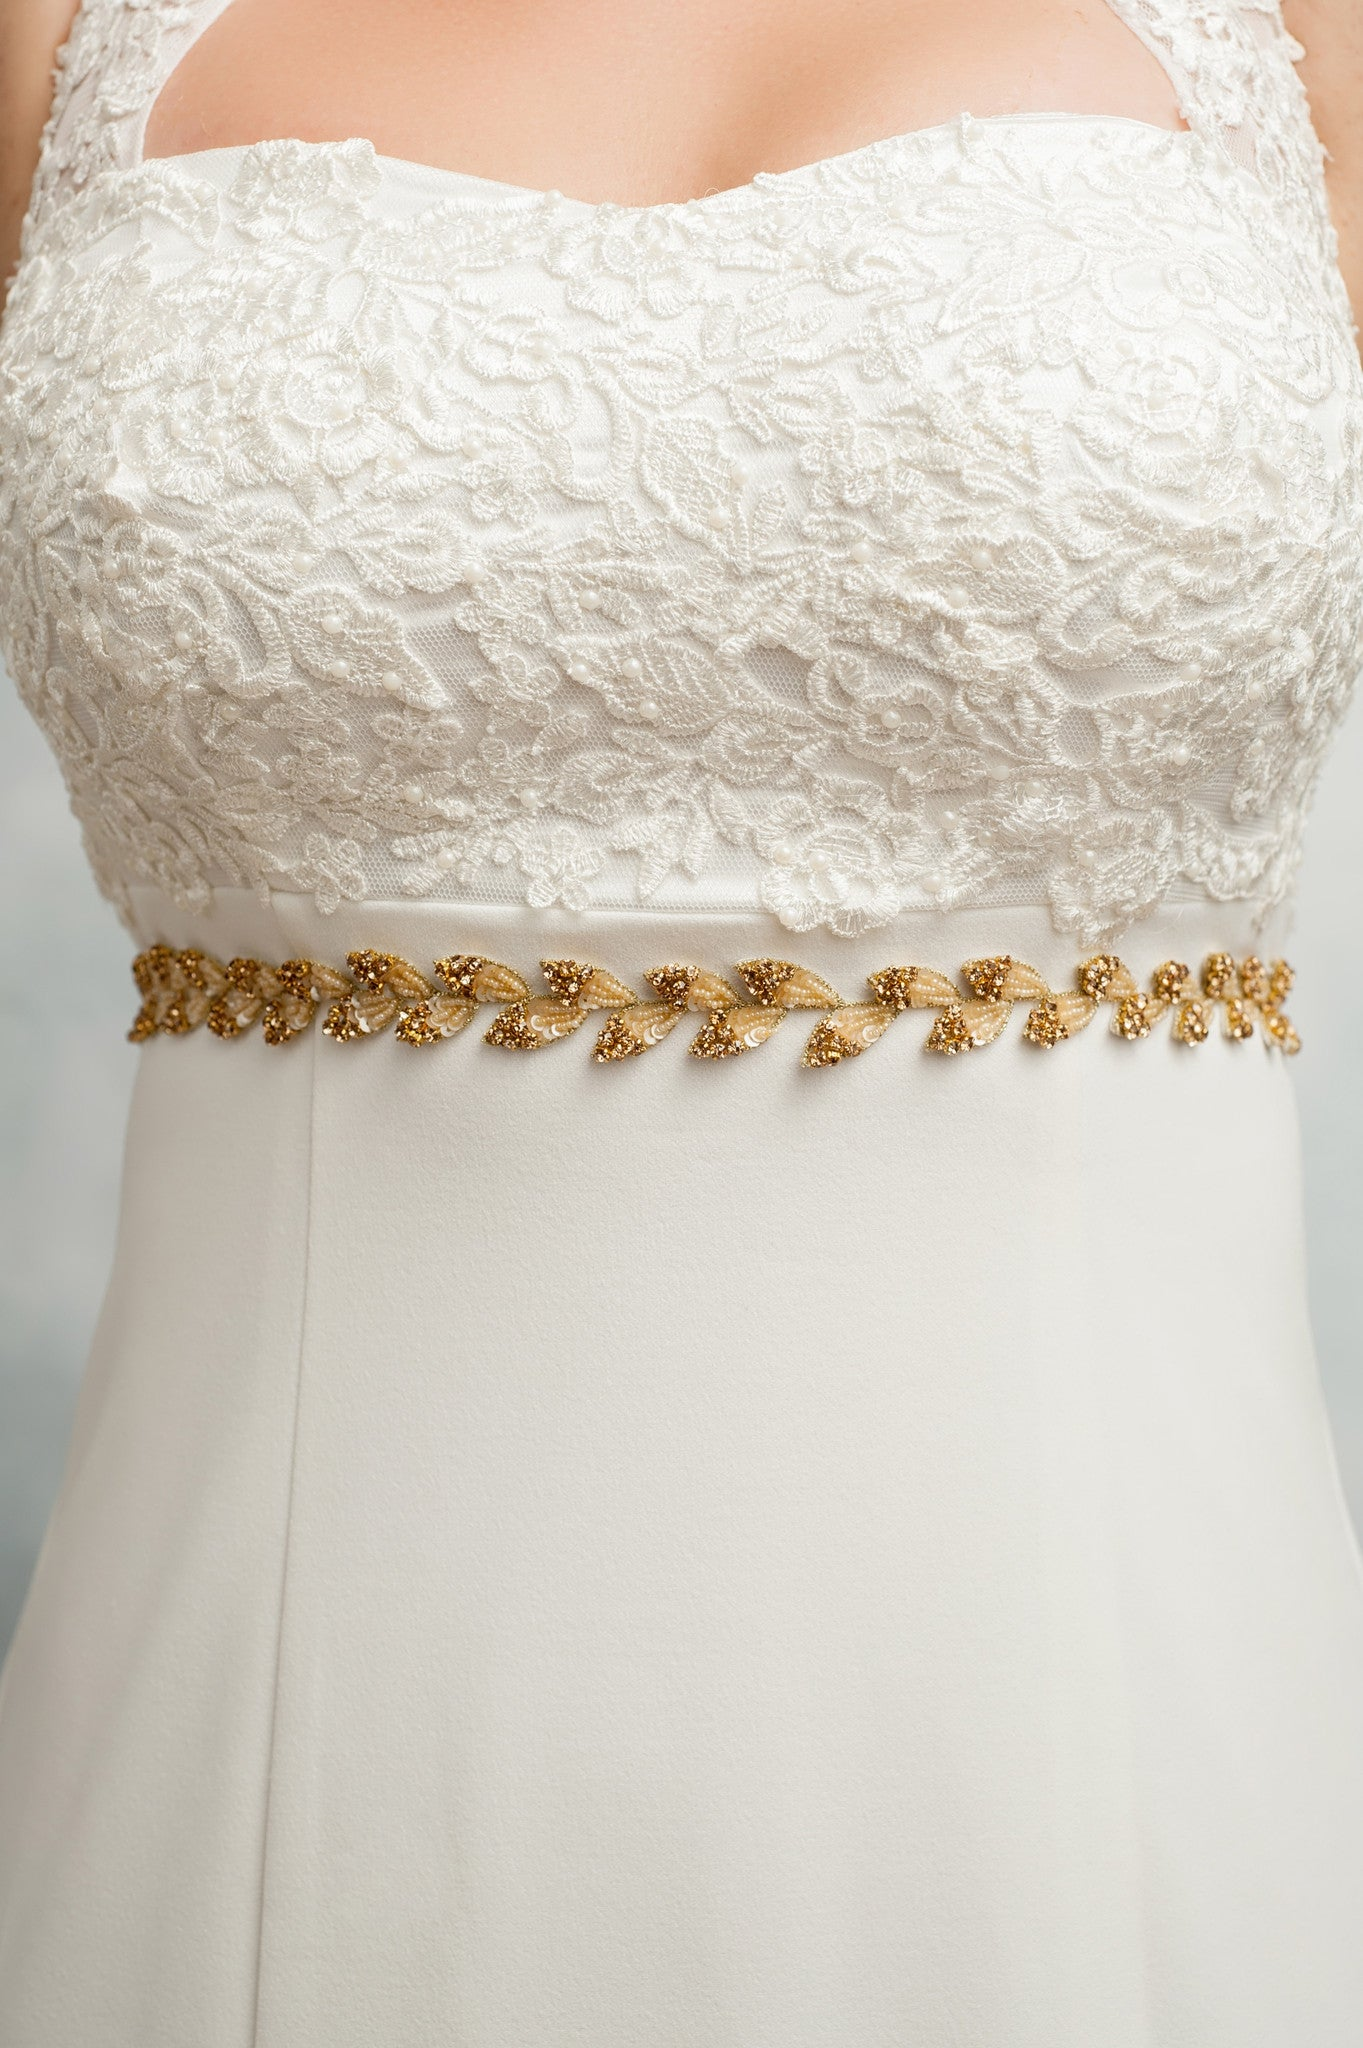 Skinny leaves sash SB160303 (As seen on BHLDN)